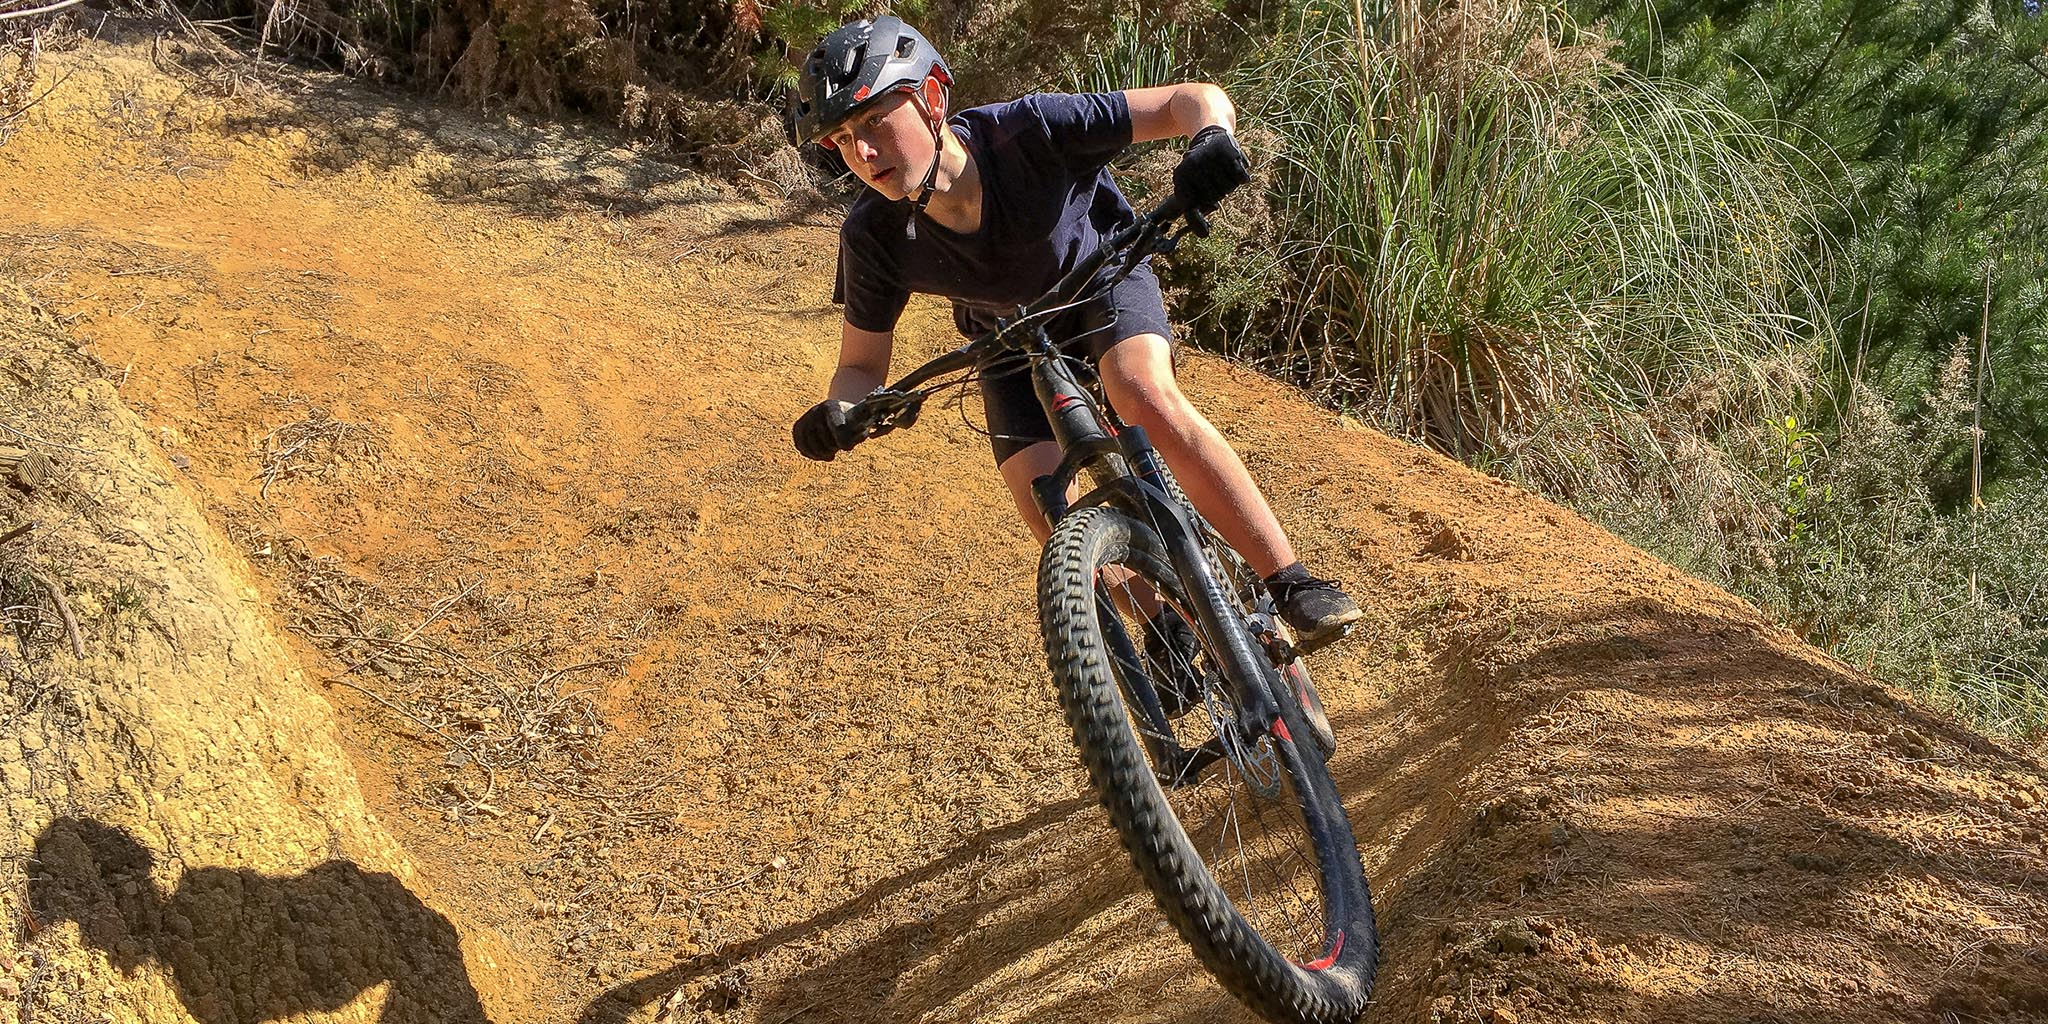 Learn to ride mountain bikes on our 50Km OF WORLD CLASS MTB TRAILS